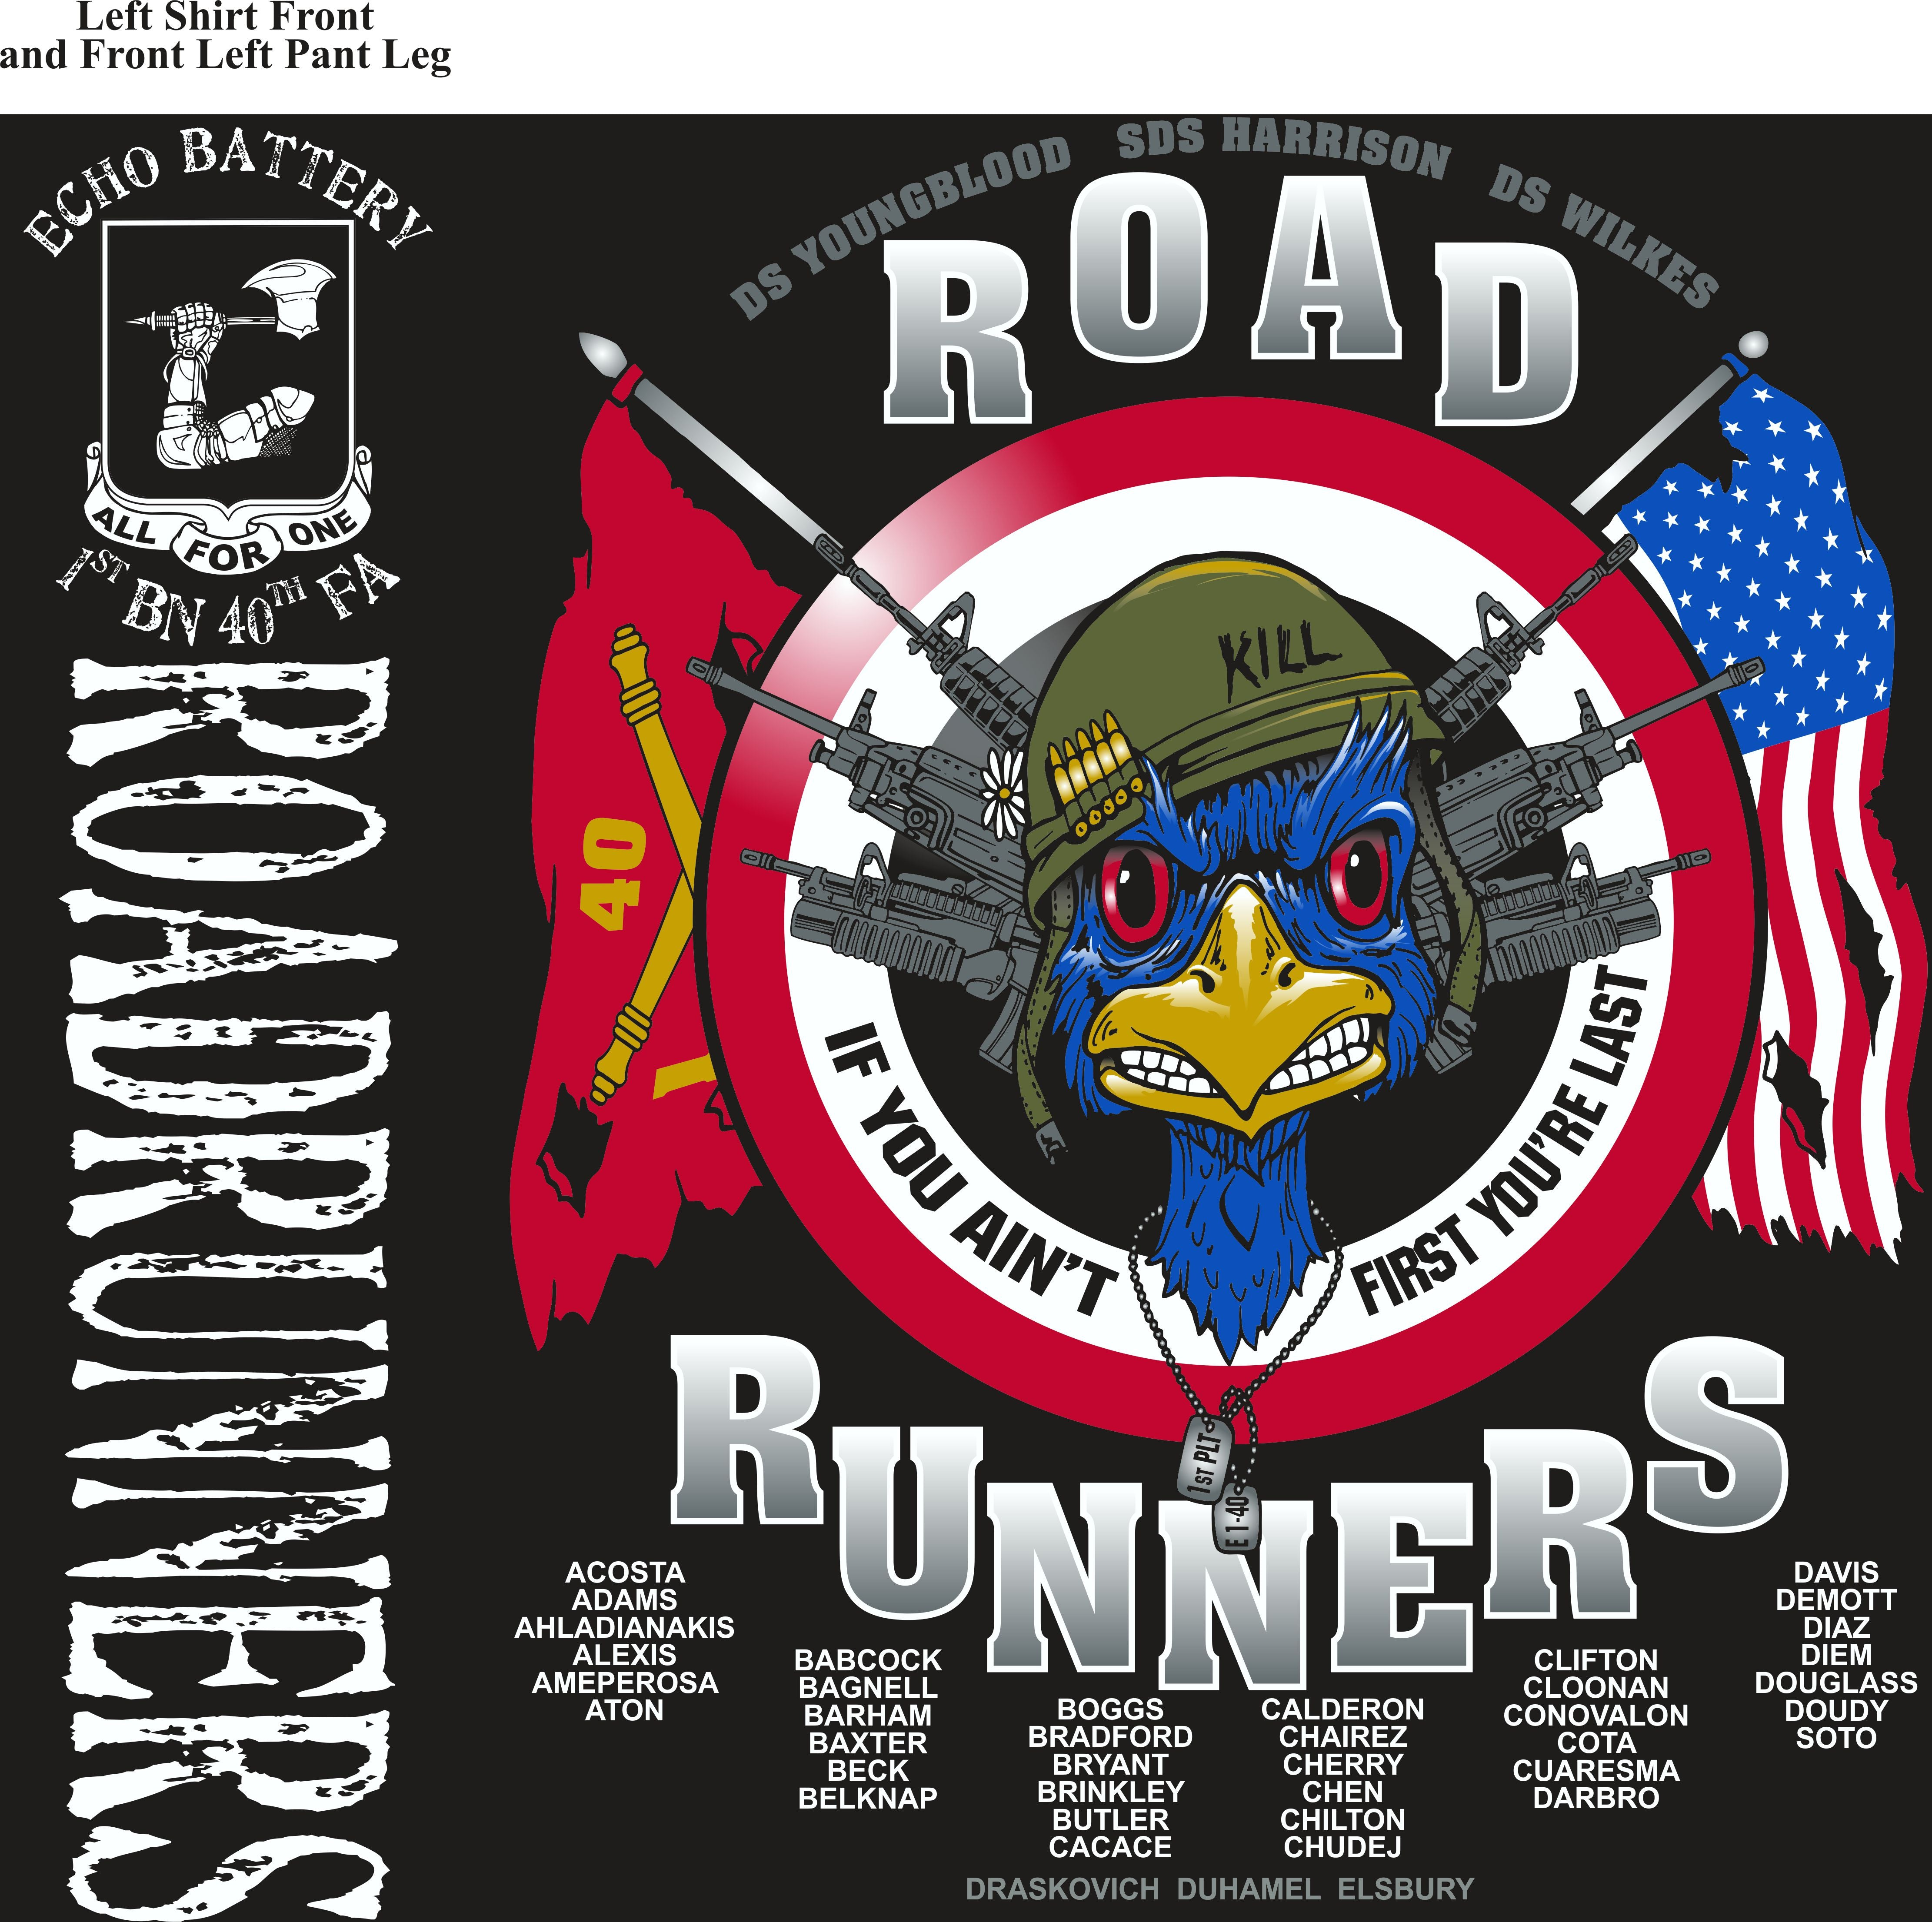 Platoon Shirts (2nd generation print) ECHO 1st 40th ROAD RUNNERS JUNE 2018